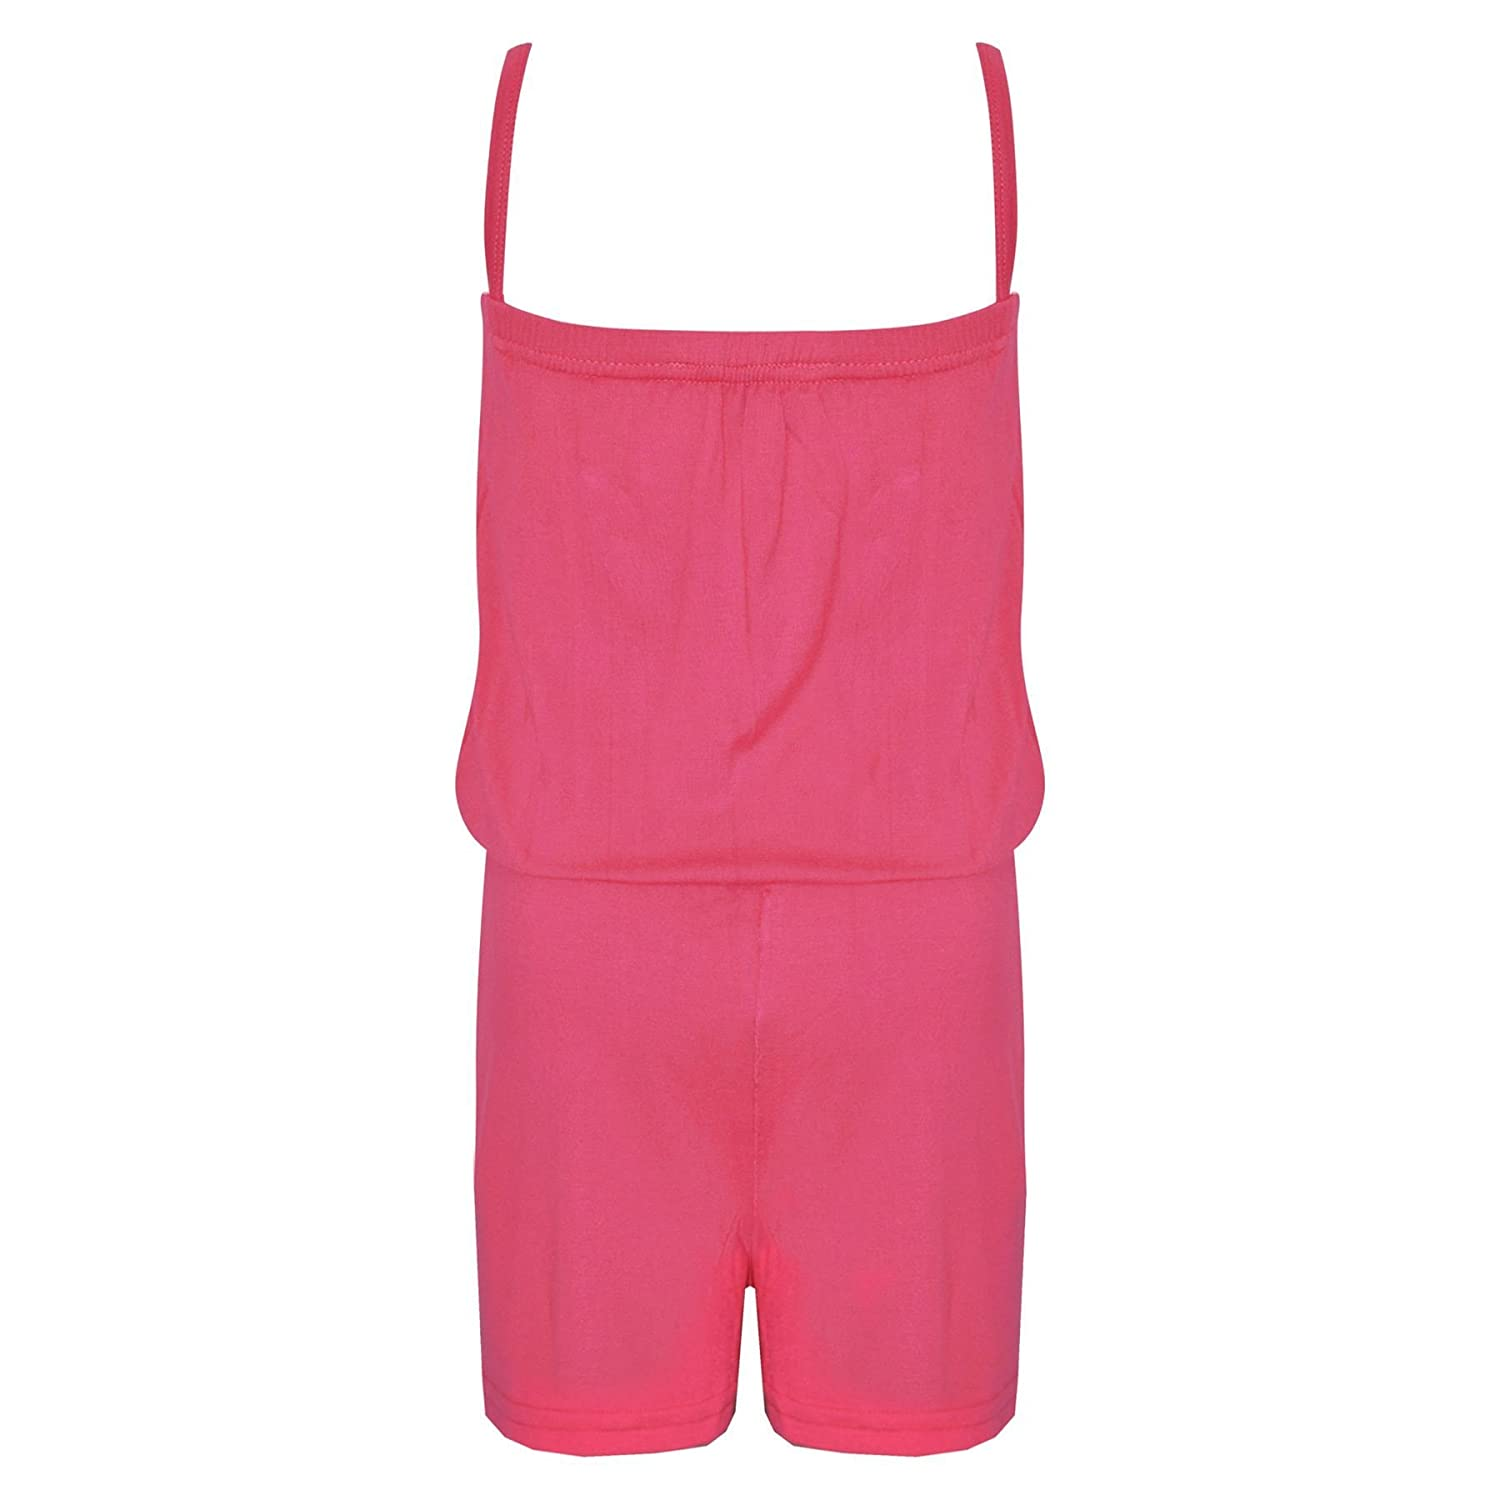 Kids Girls Plain Neon Pink Color Playsuit Trendy All in One New Jumpsuit 5-13 Yr